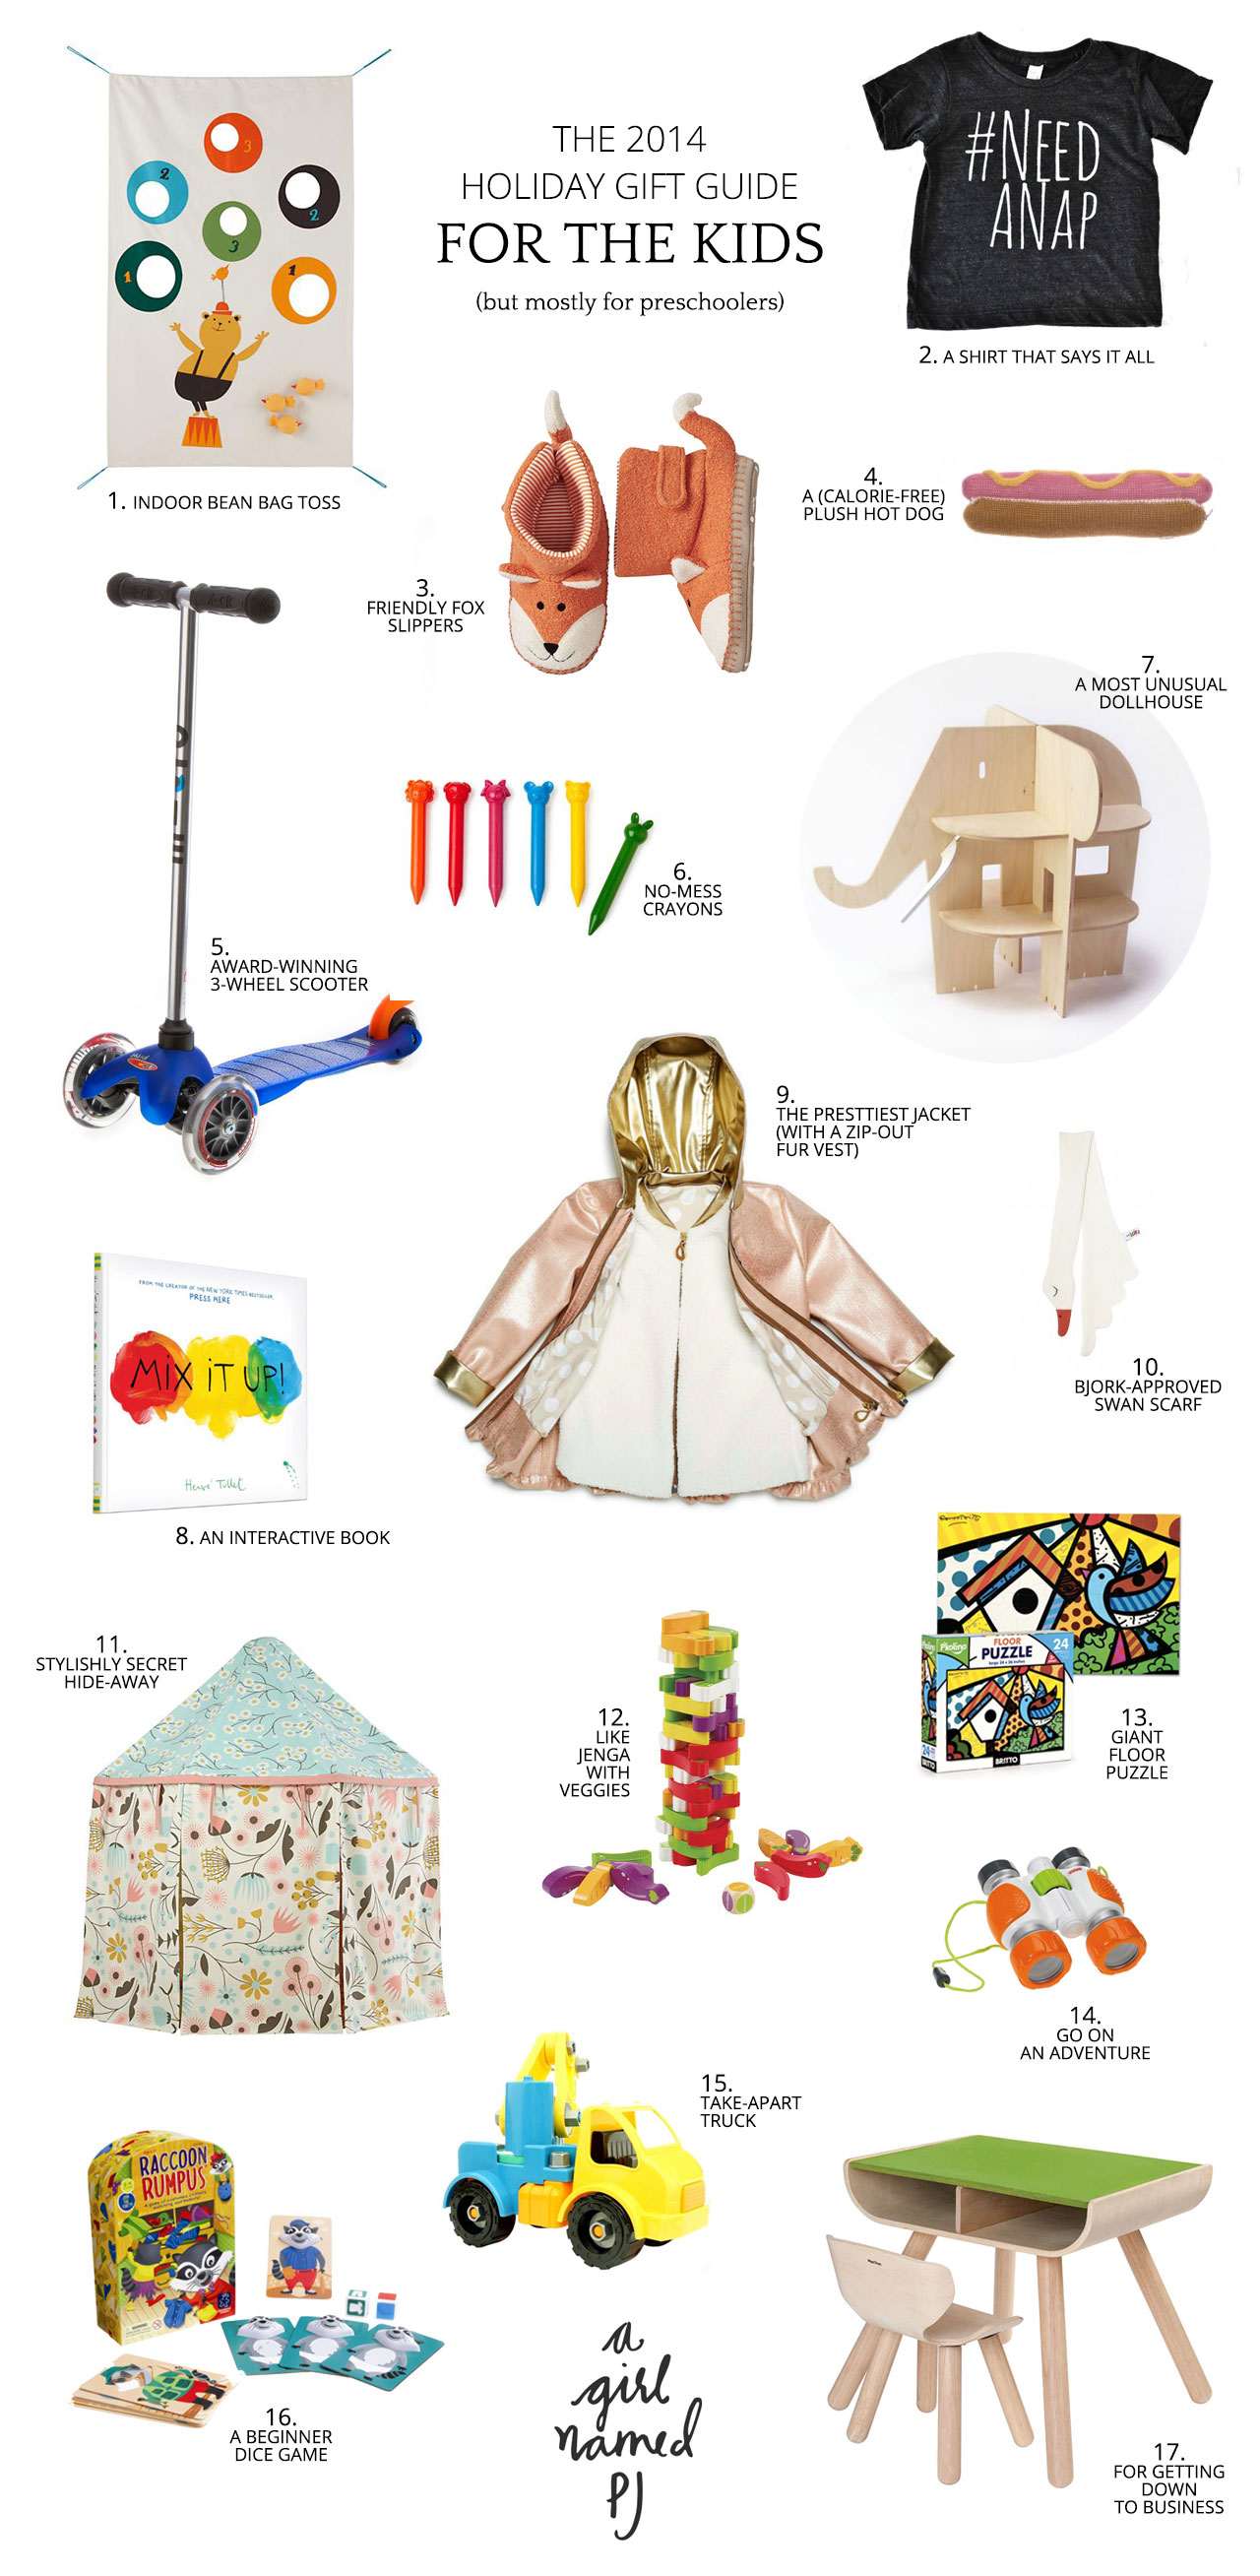 Holiday Gift Guide for Kids | A Girl Named PJ